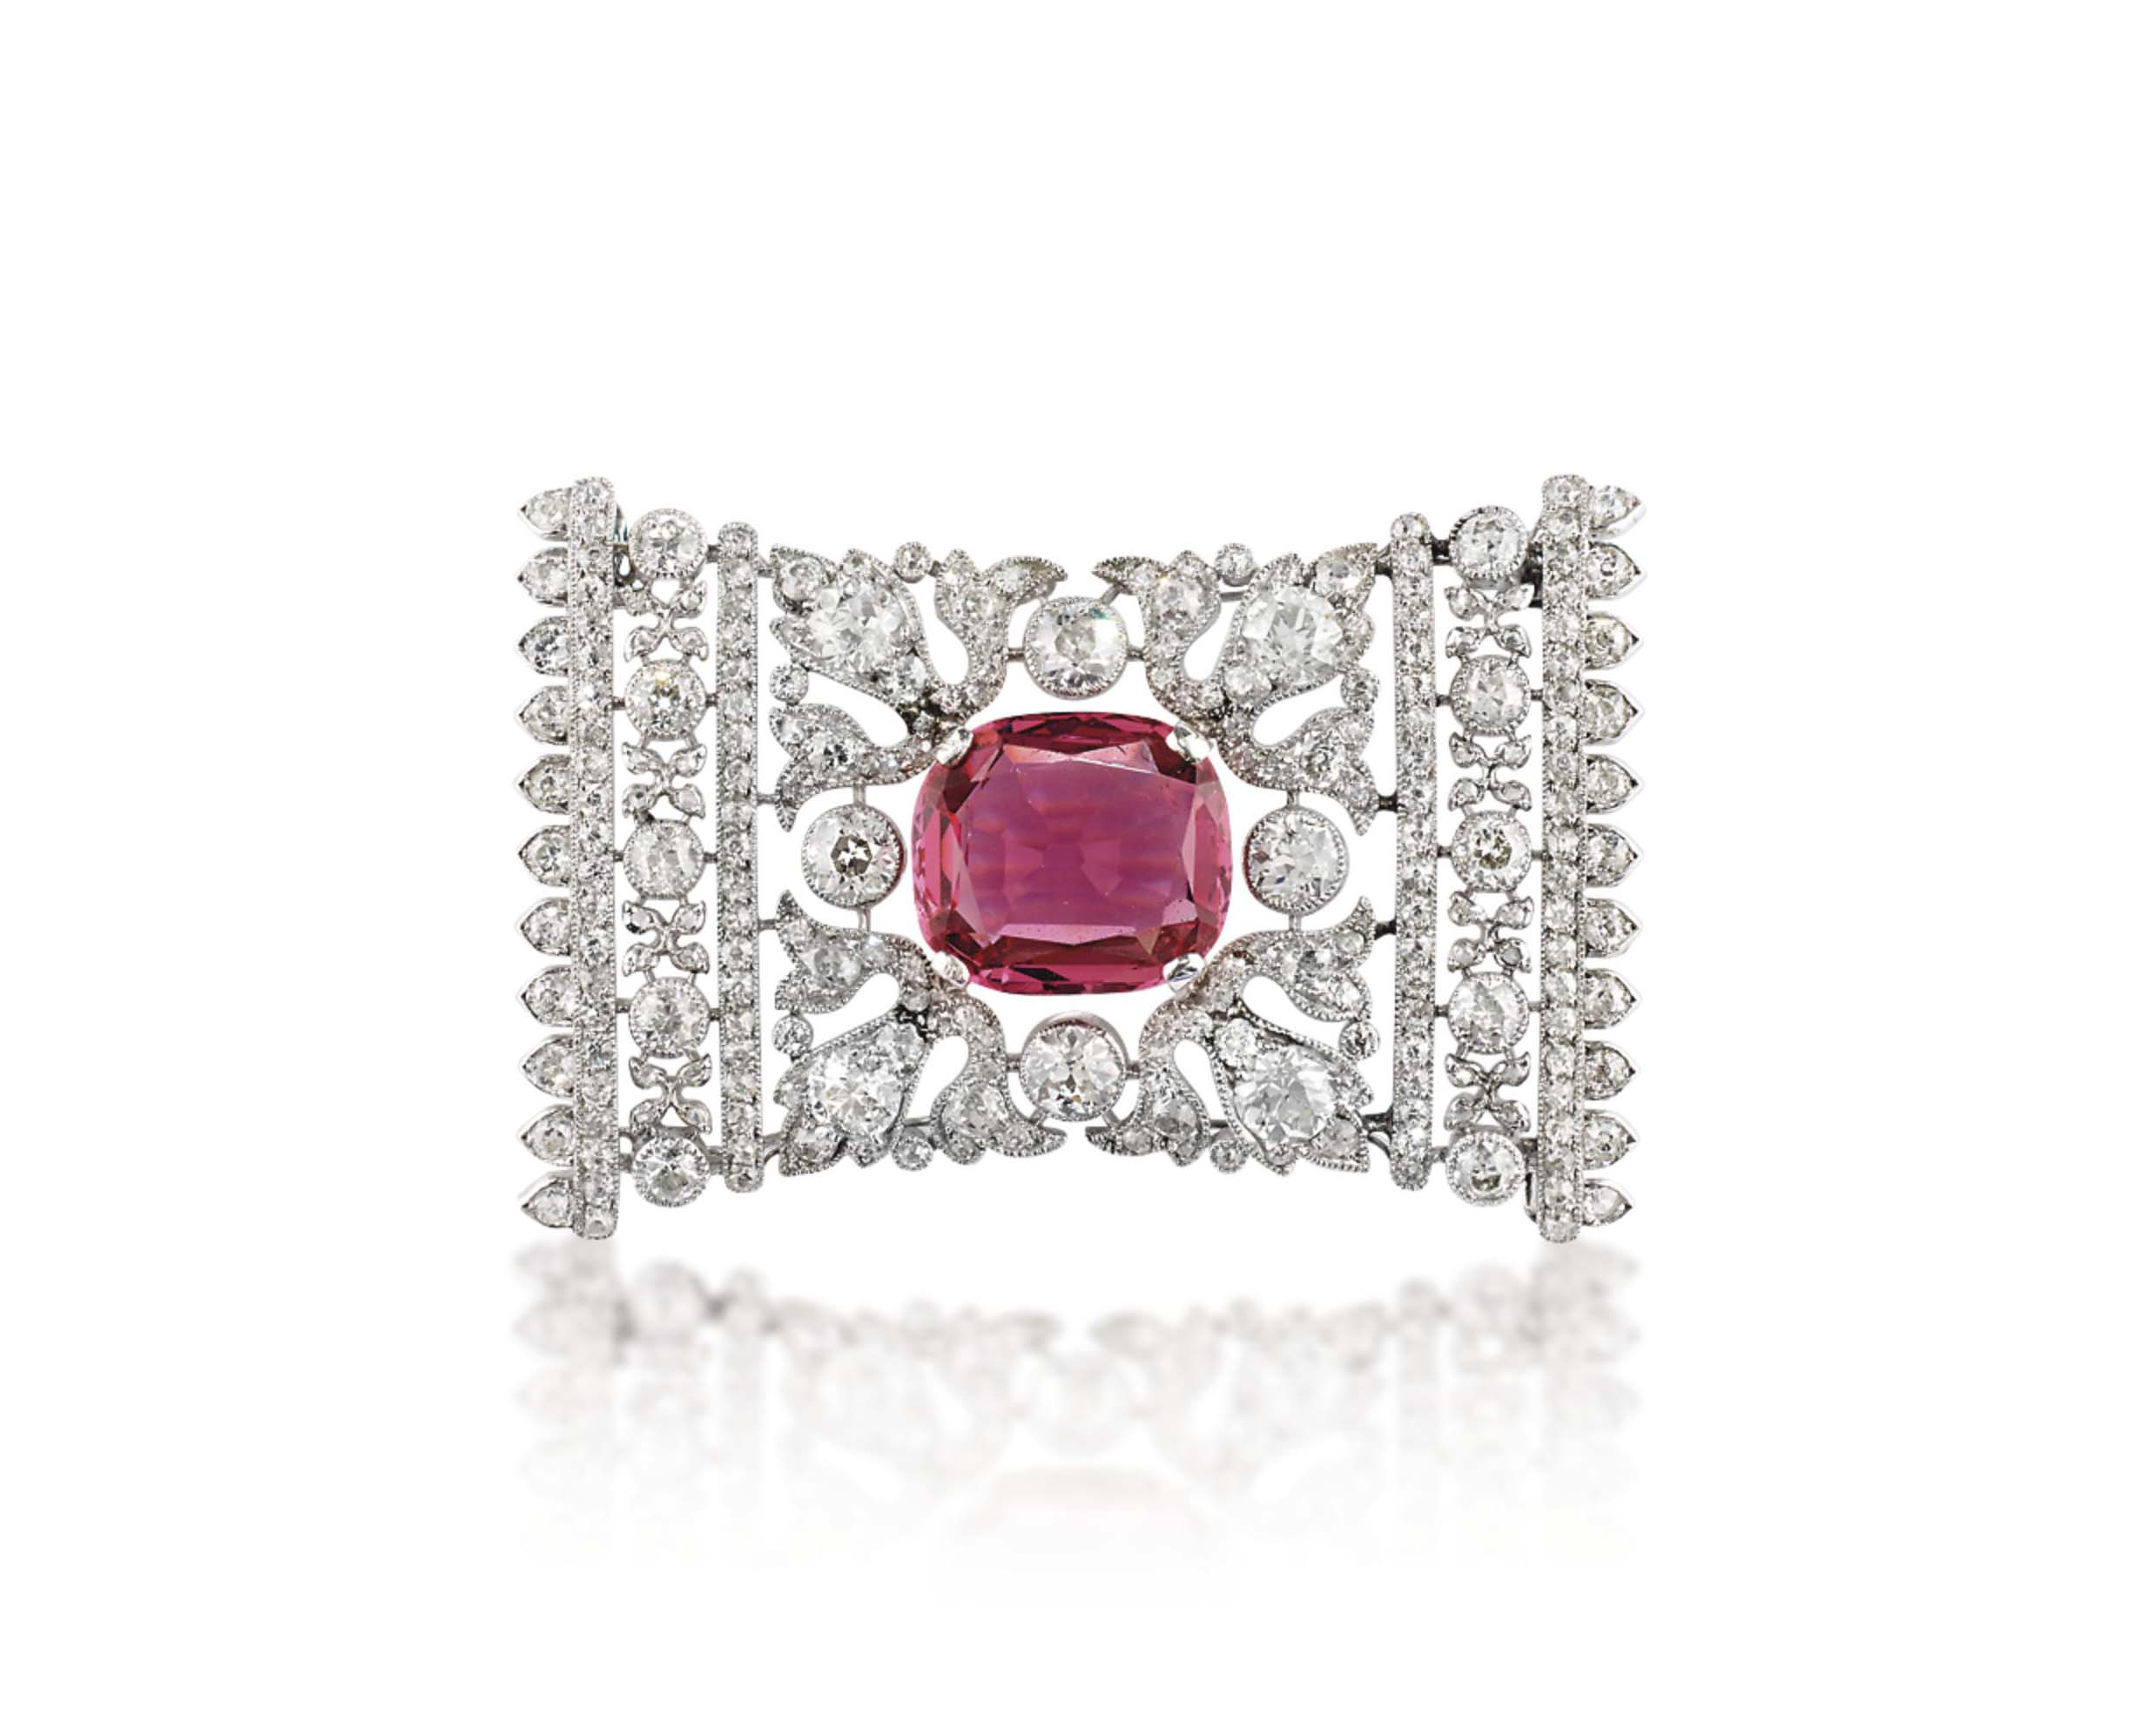 A BELLE EPOQUE SPINEL AND DIAM